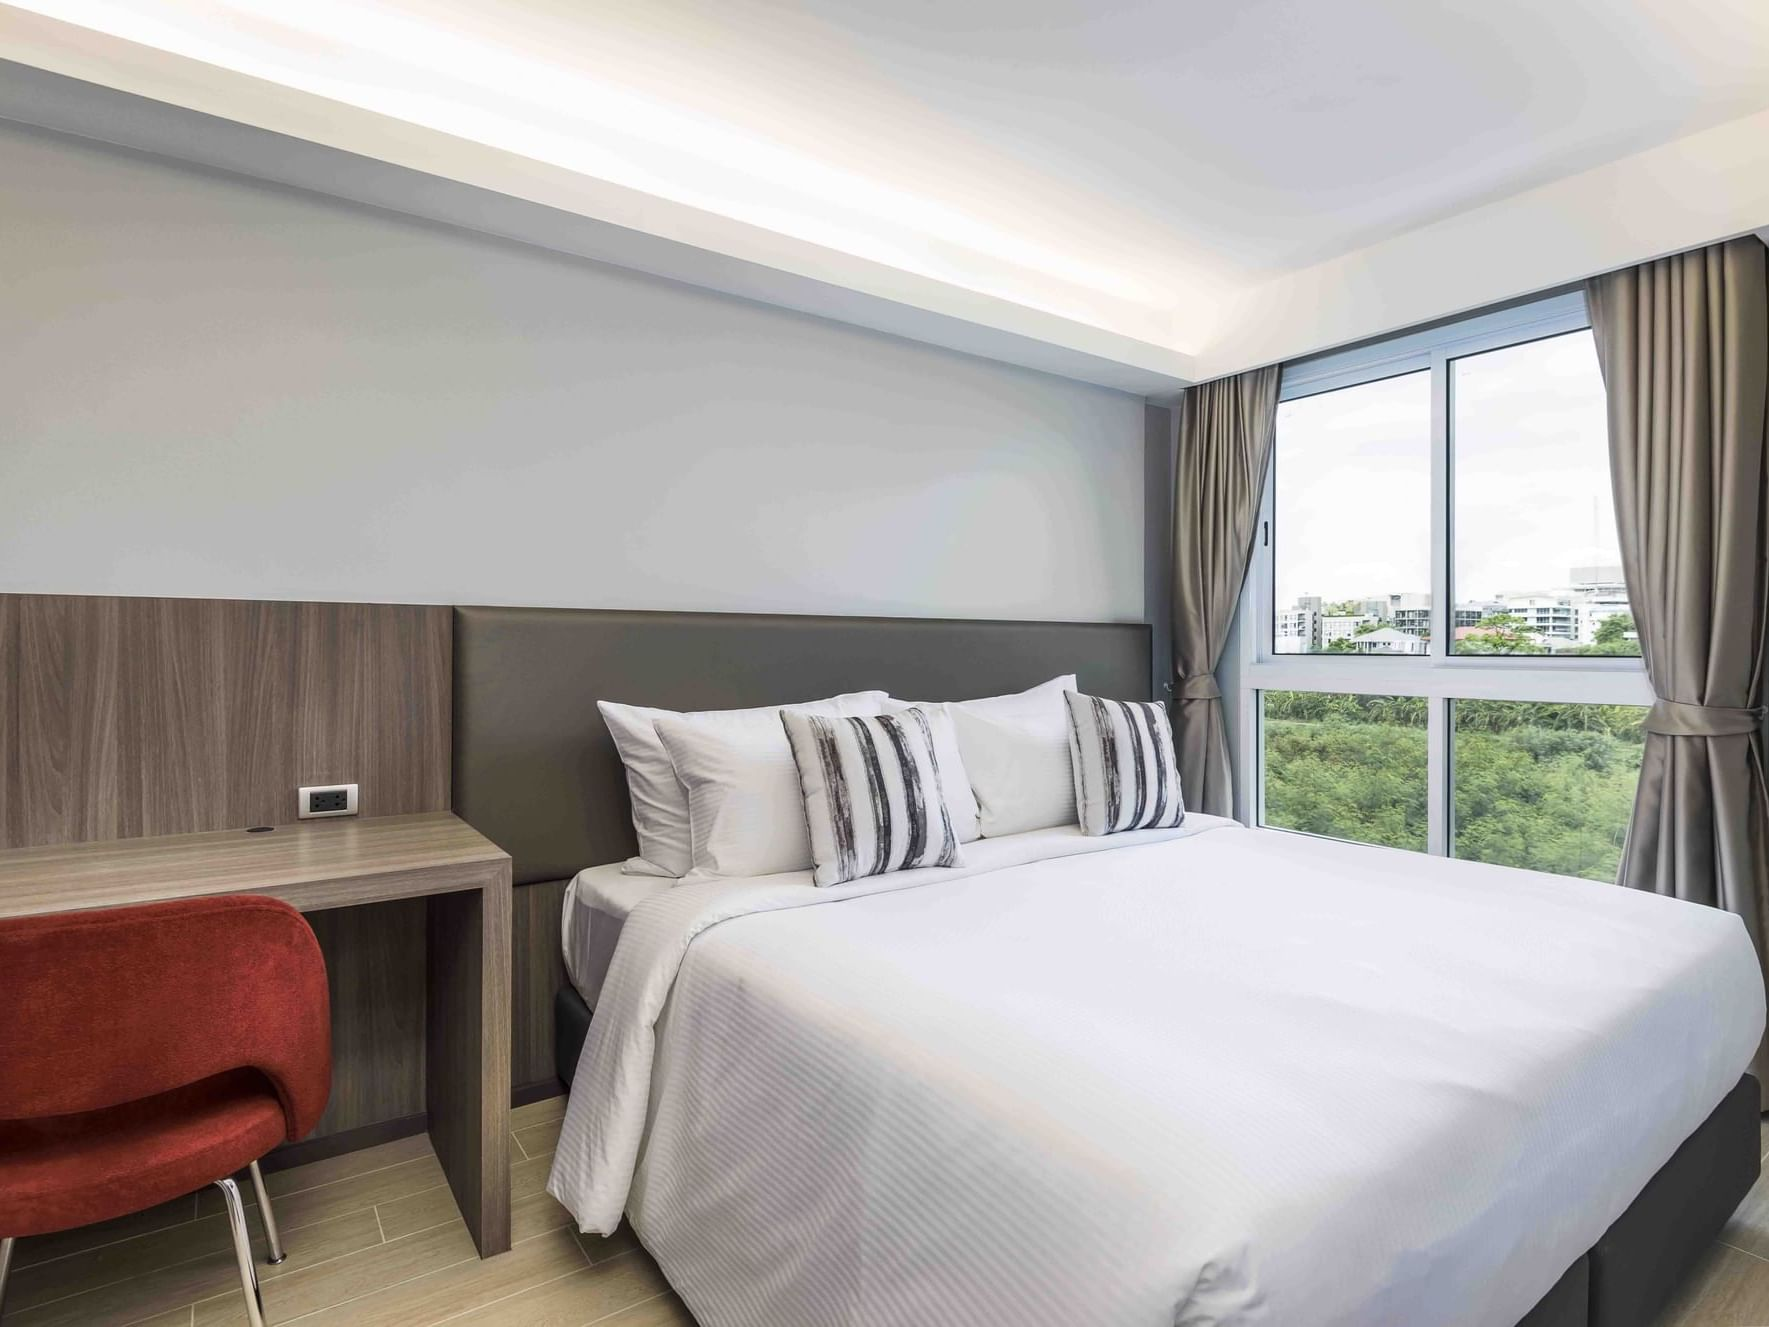 View of One bedroom suites at Maitria Hotel Rama 9 Bangkok